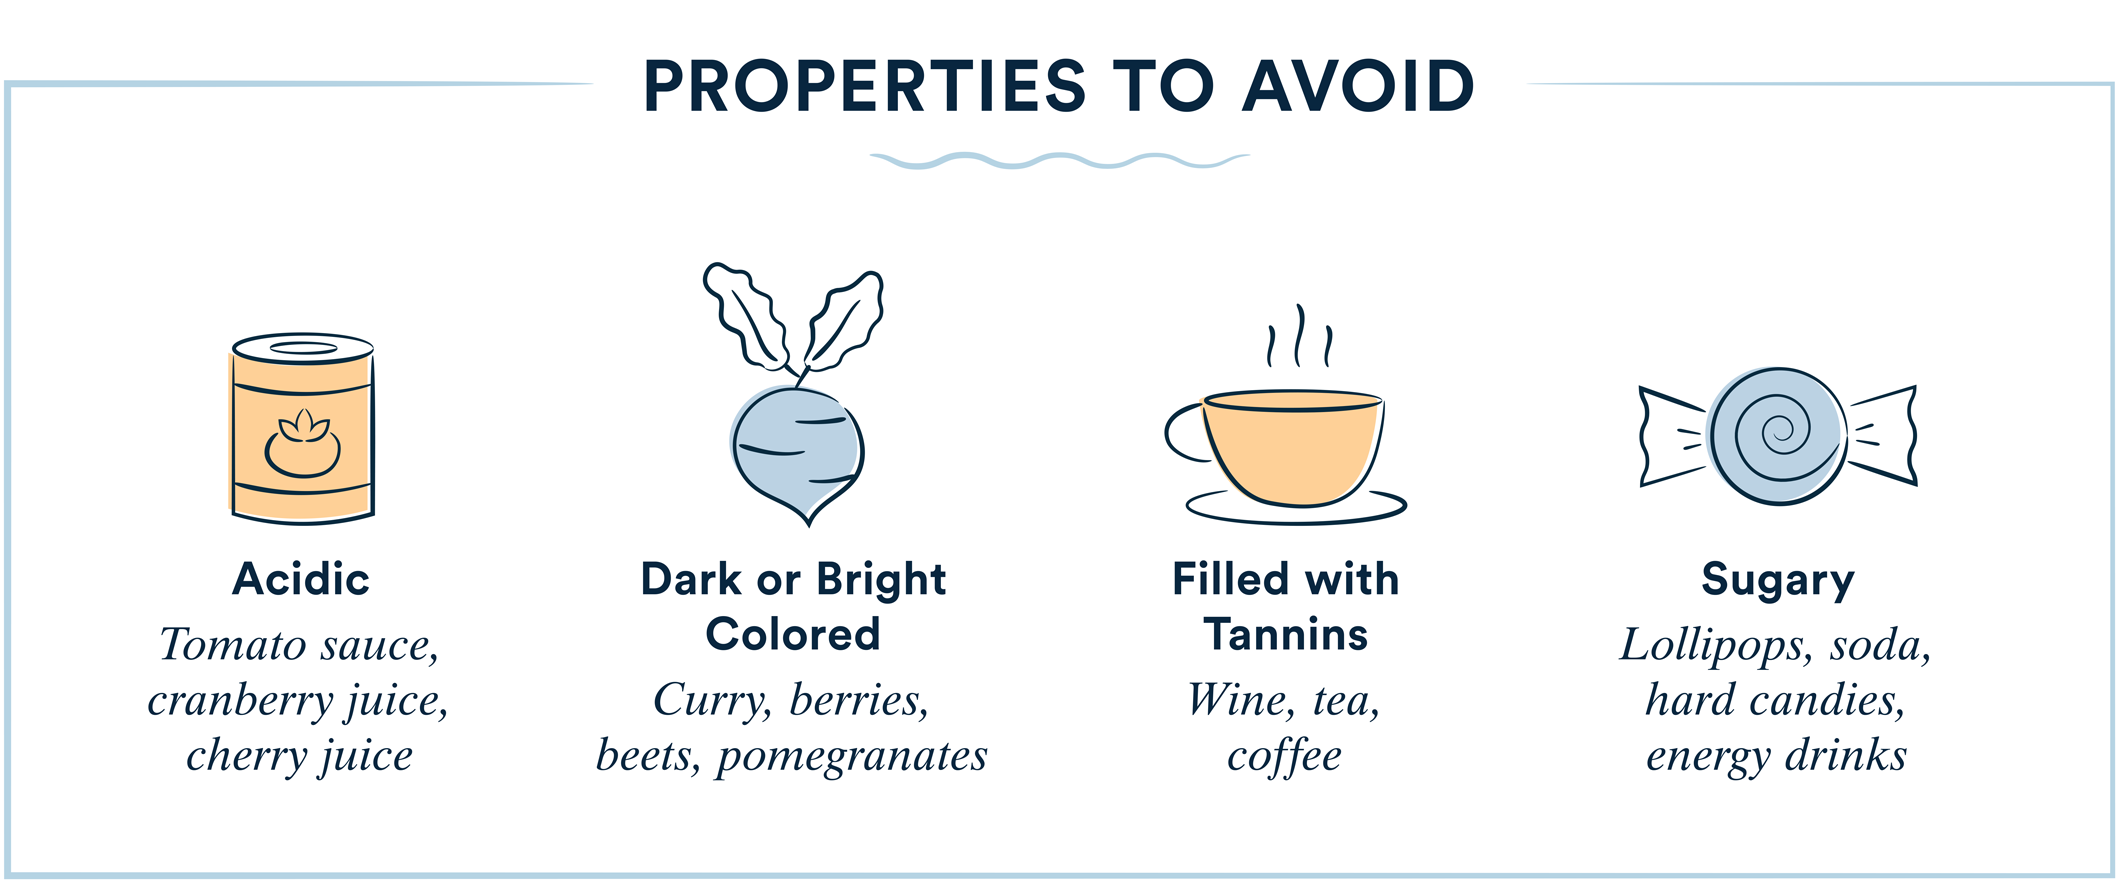 avoid foods that are acidic, dark colored, filled with tannins, and sugary